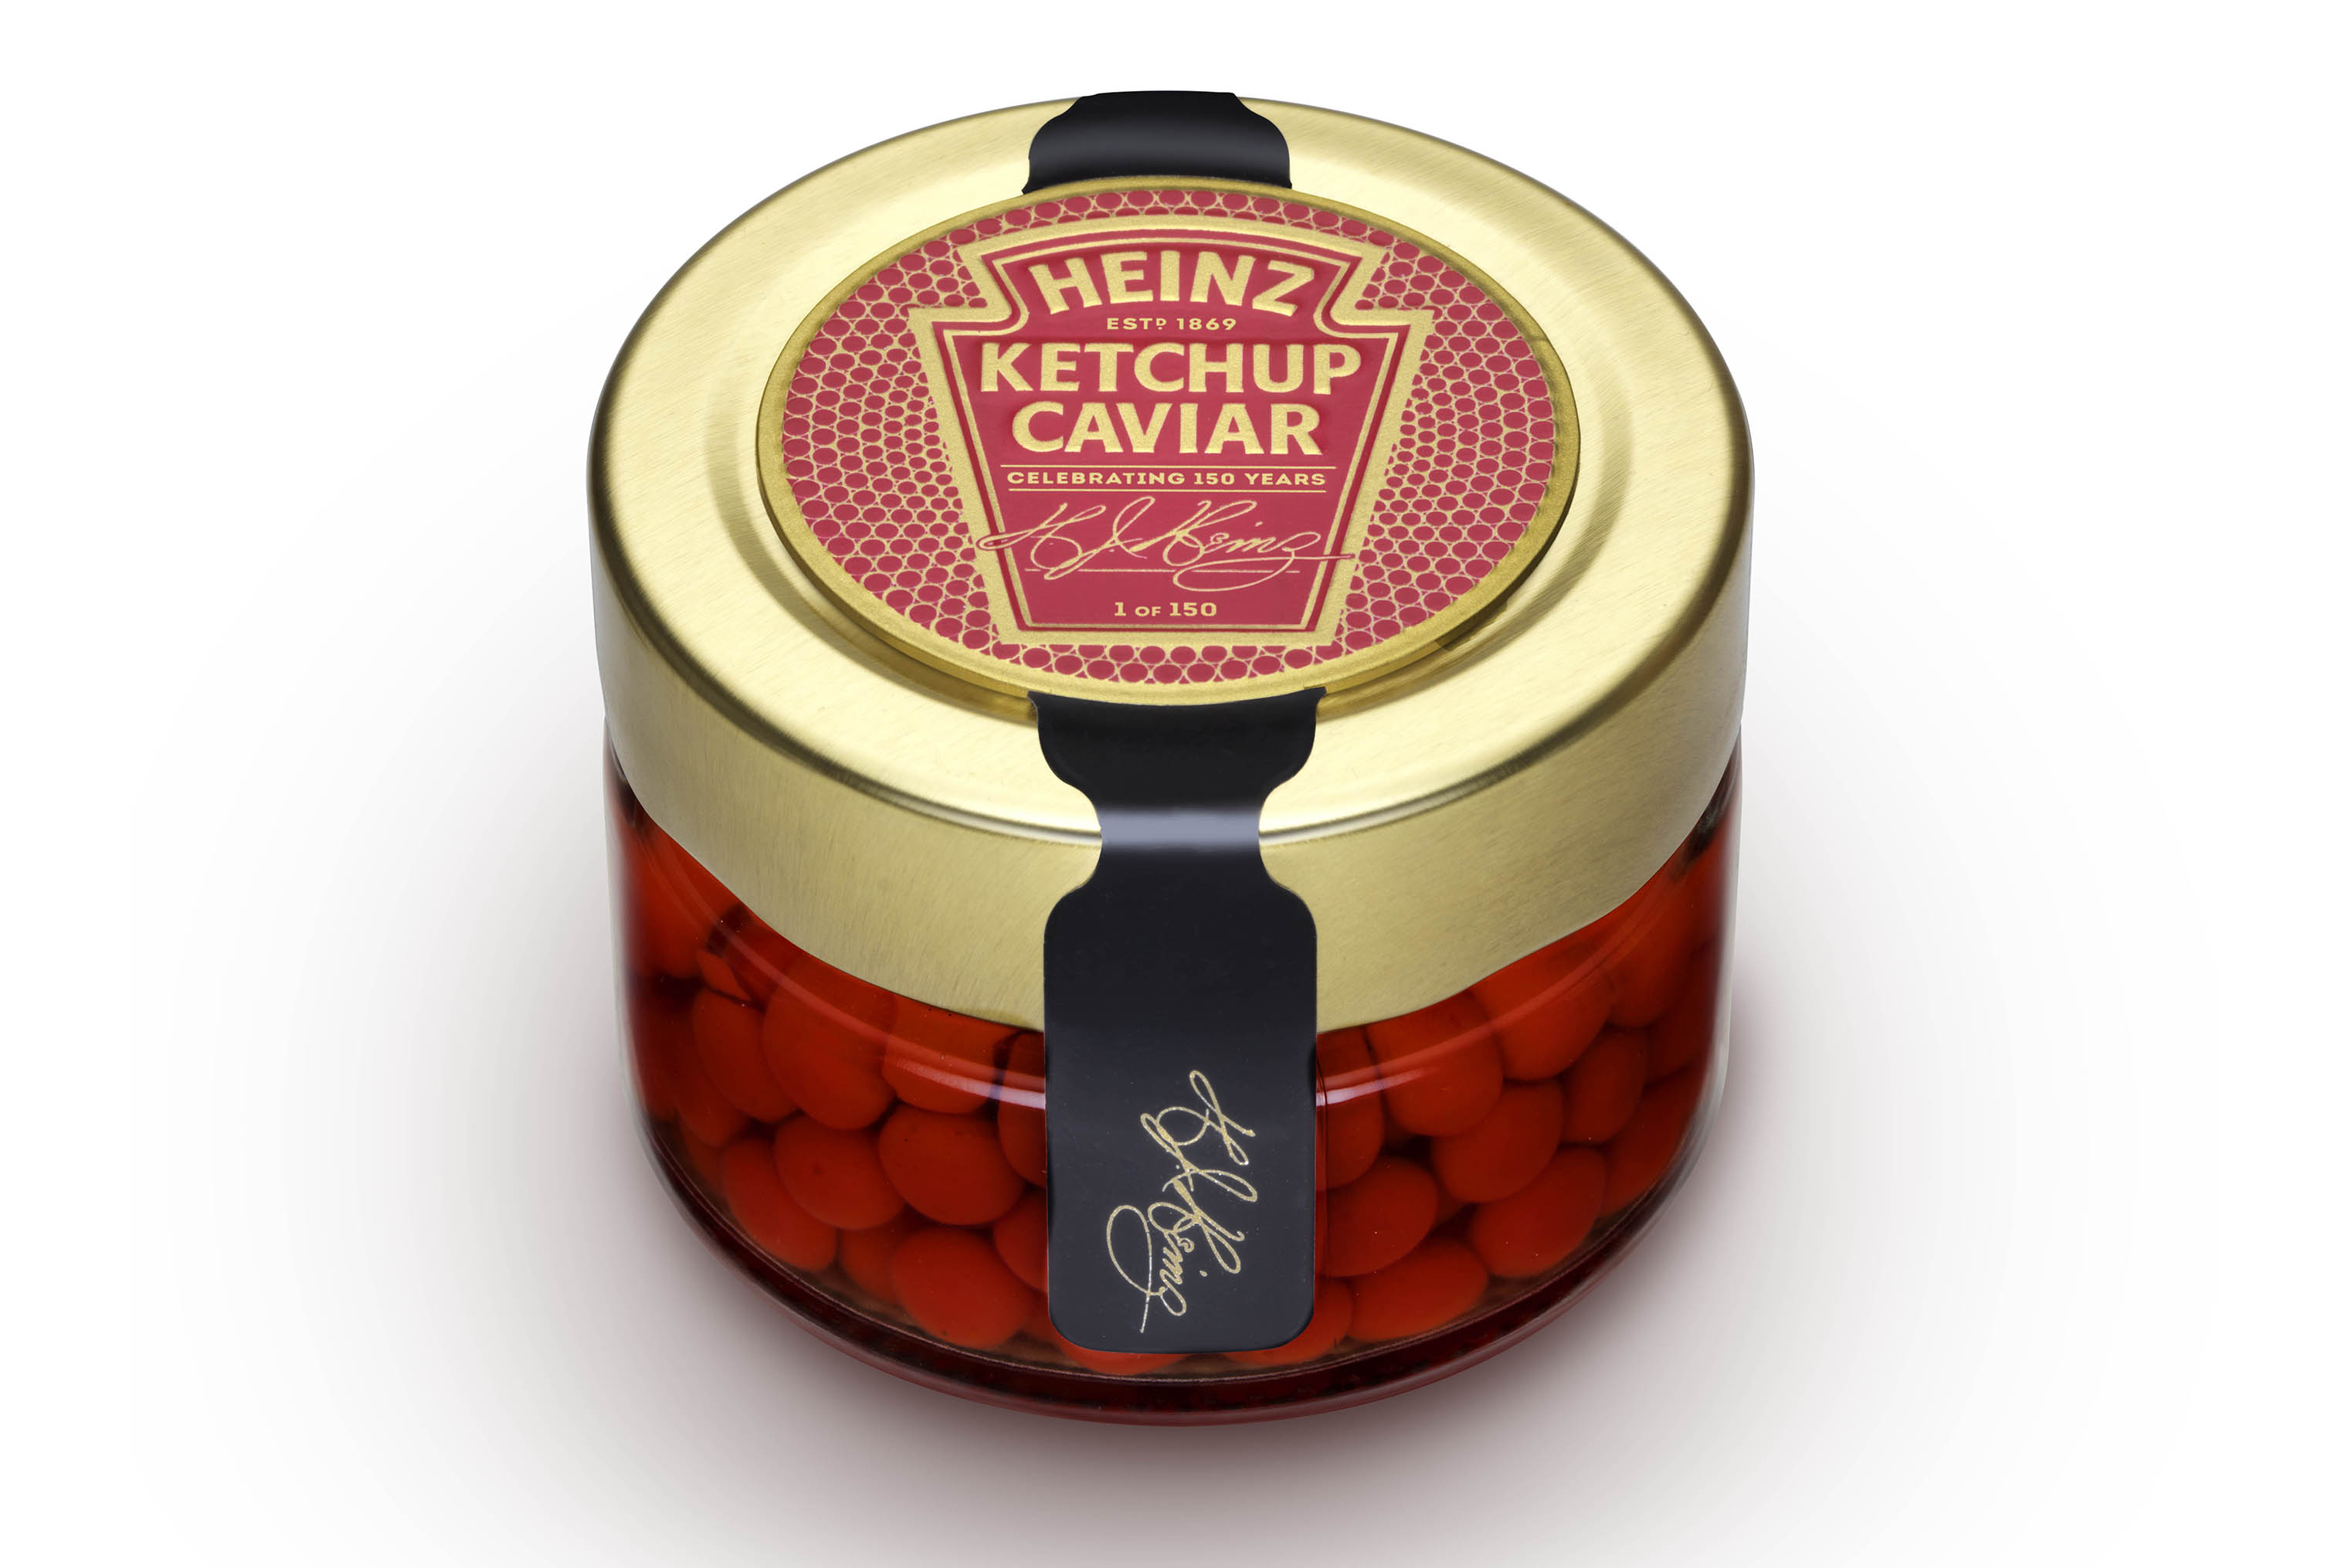 An 1.8 oz jar of Heinz Ketchup Caviar is valued at $5.